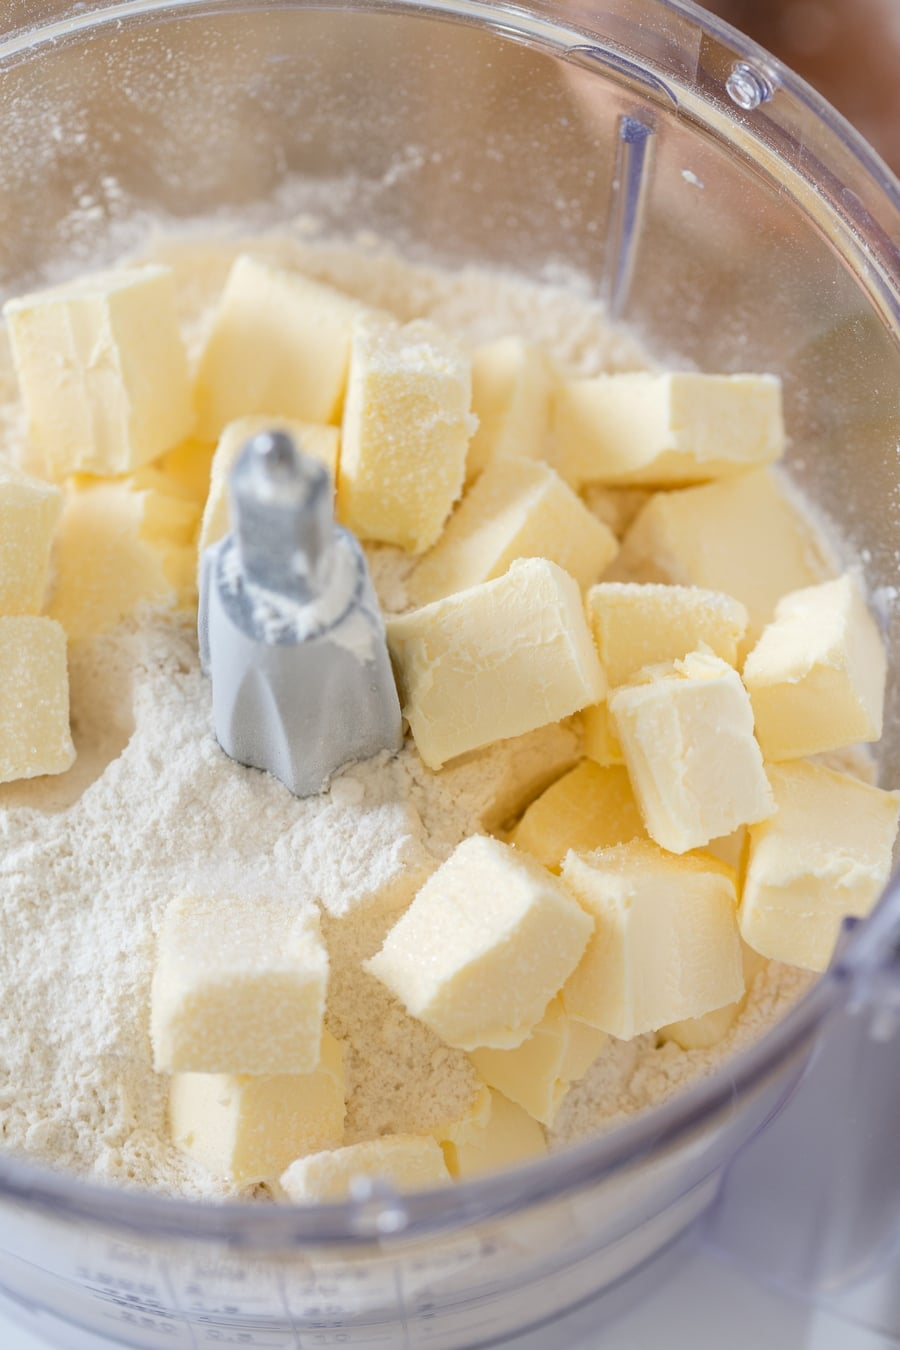 Cubed butter and flour in a food processor.